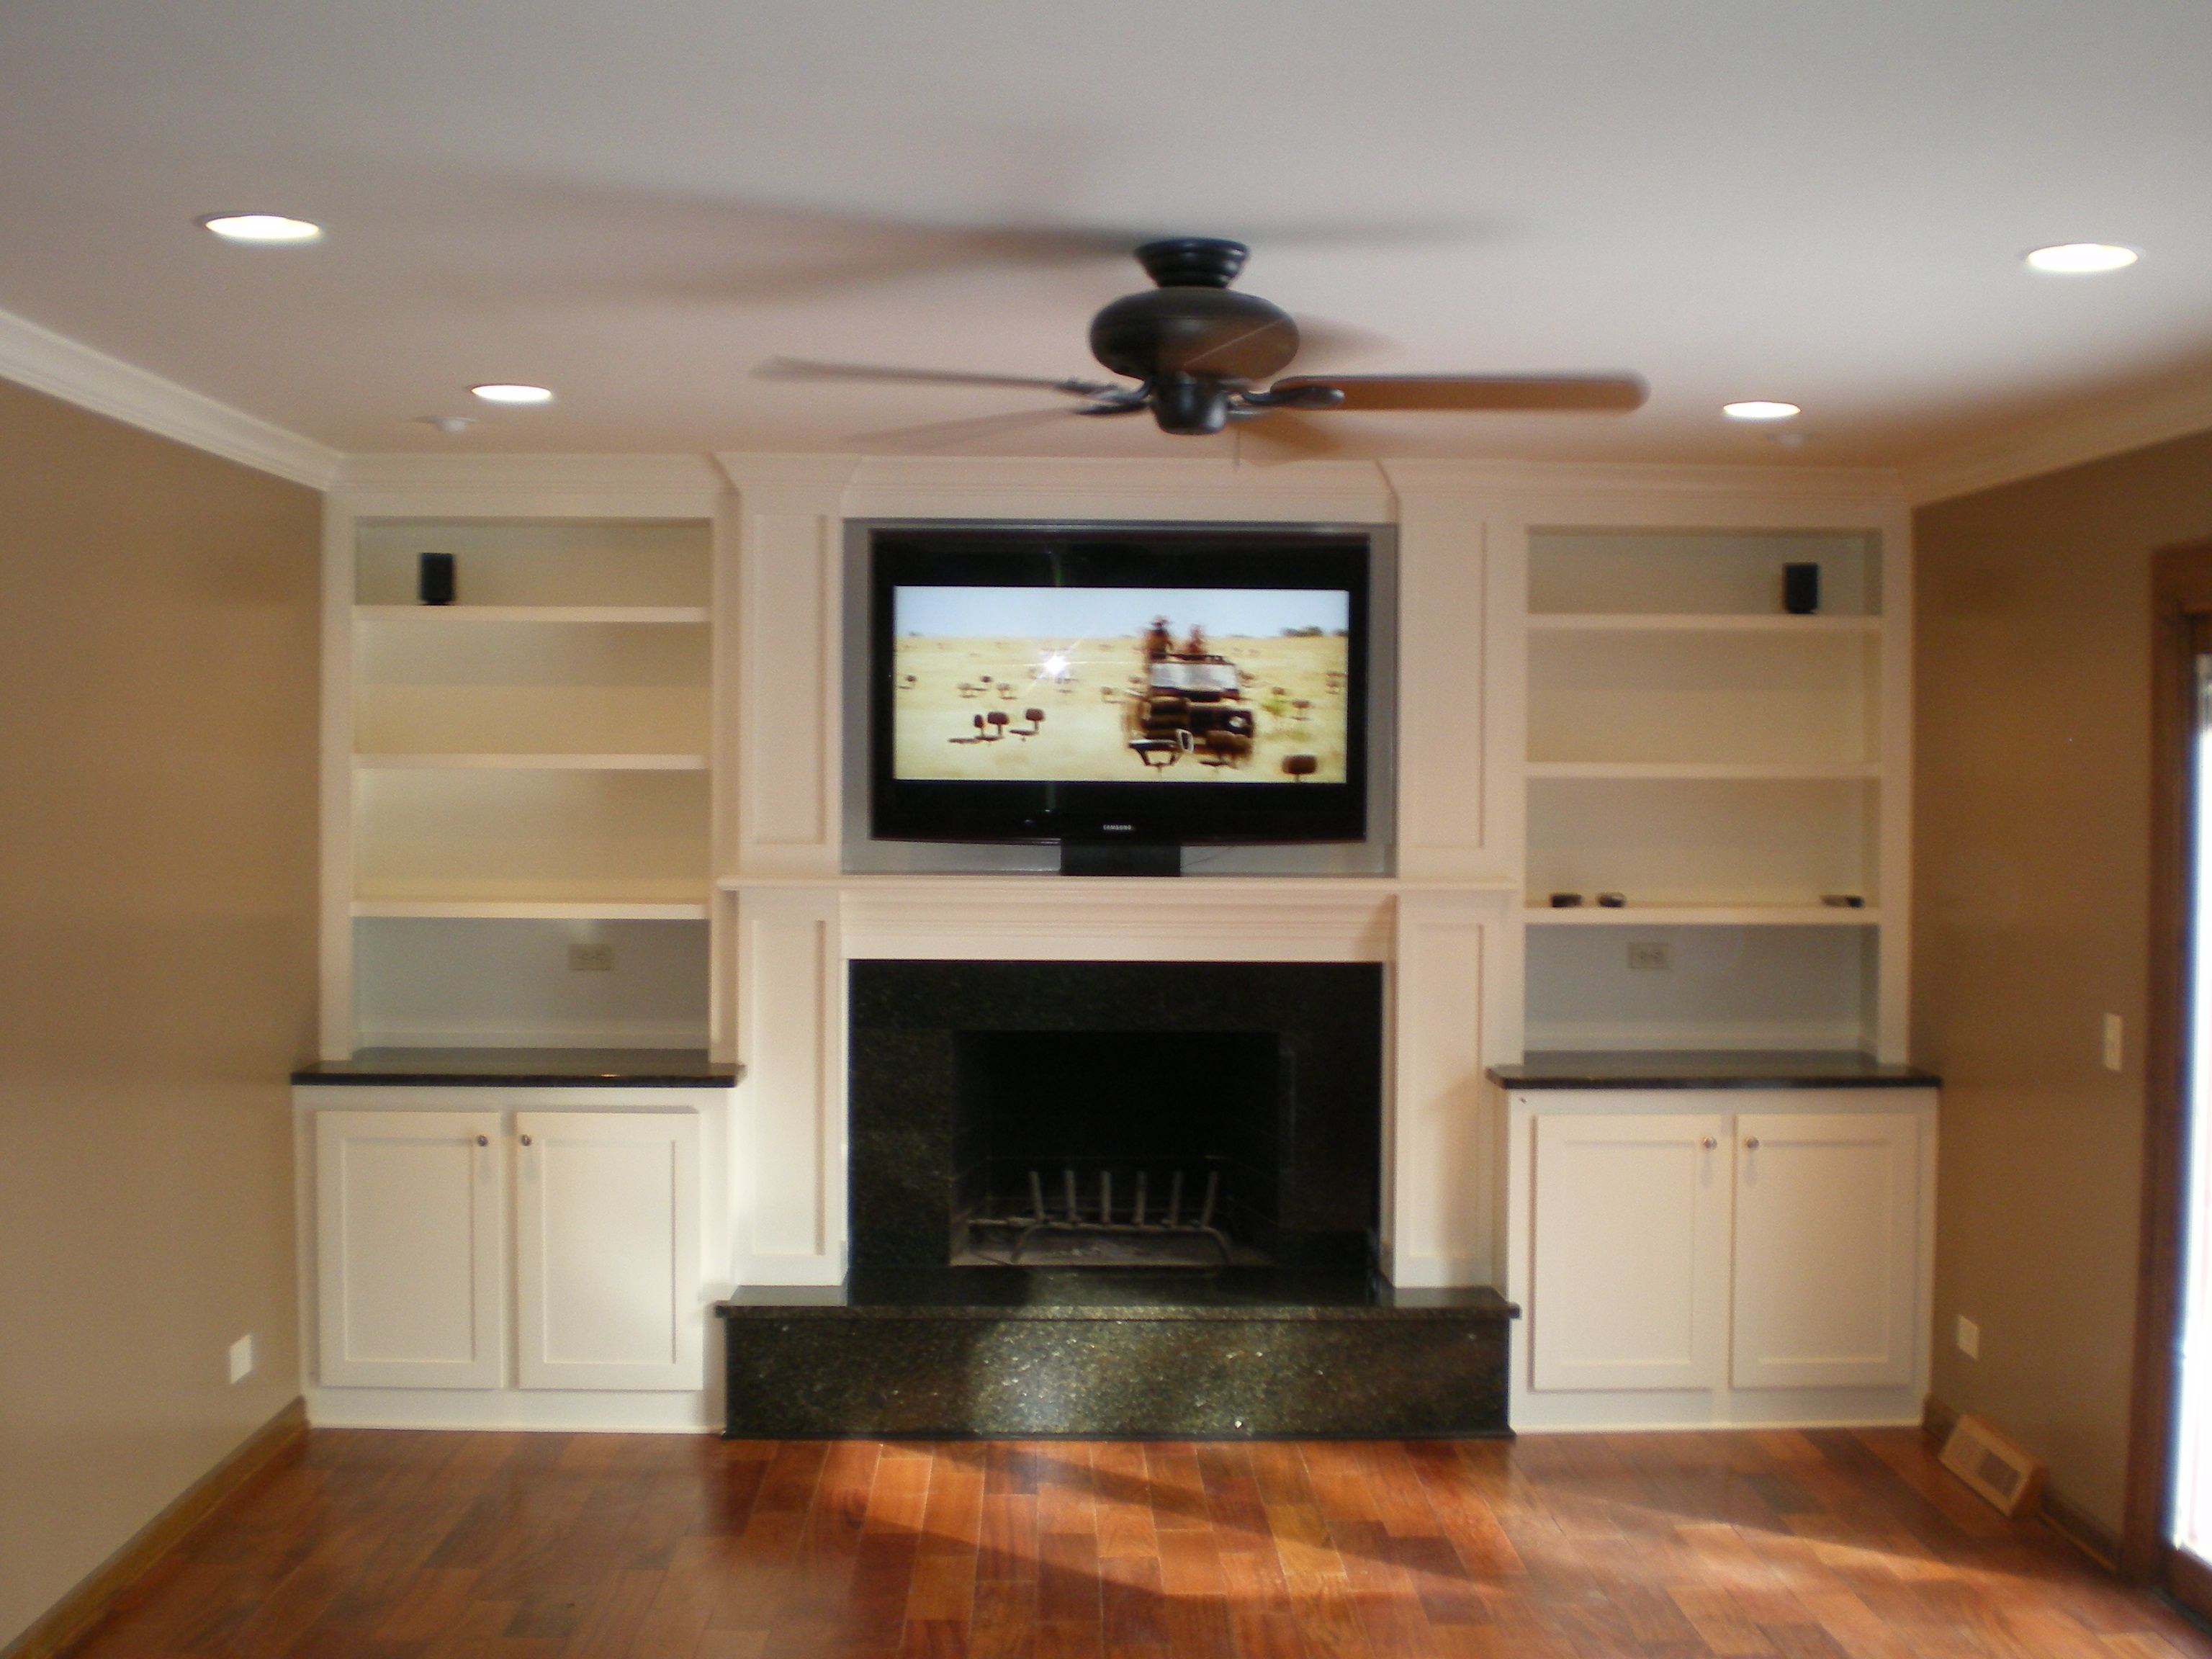 Tv Above Electric Fireplace With Bookshelves Rick Electrical Contractors Inc Project